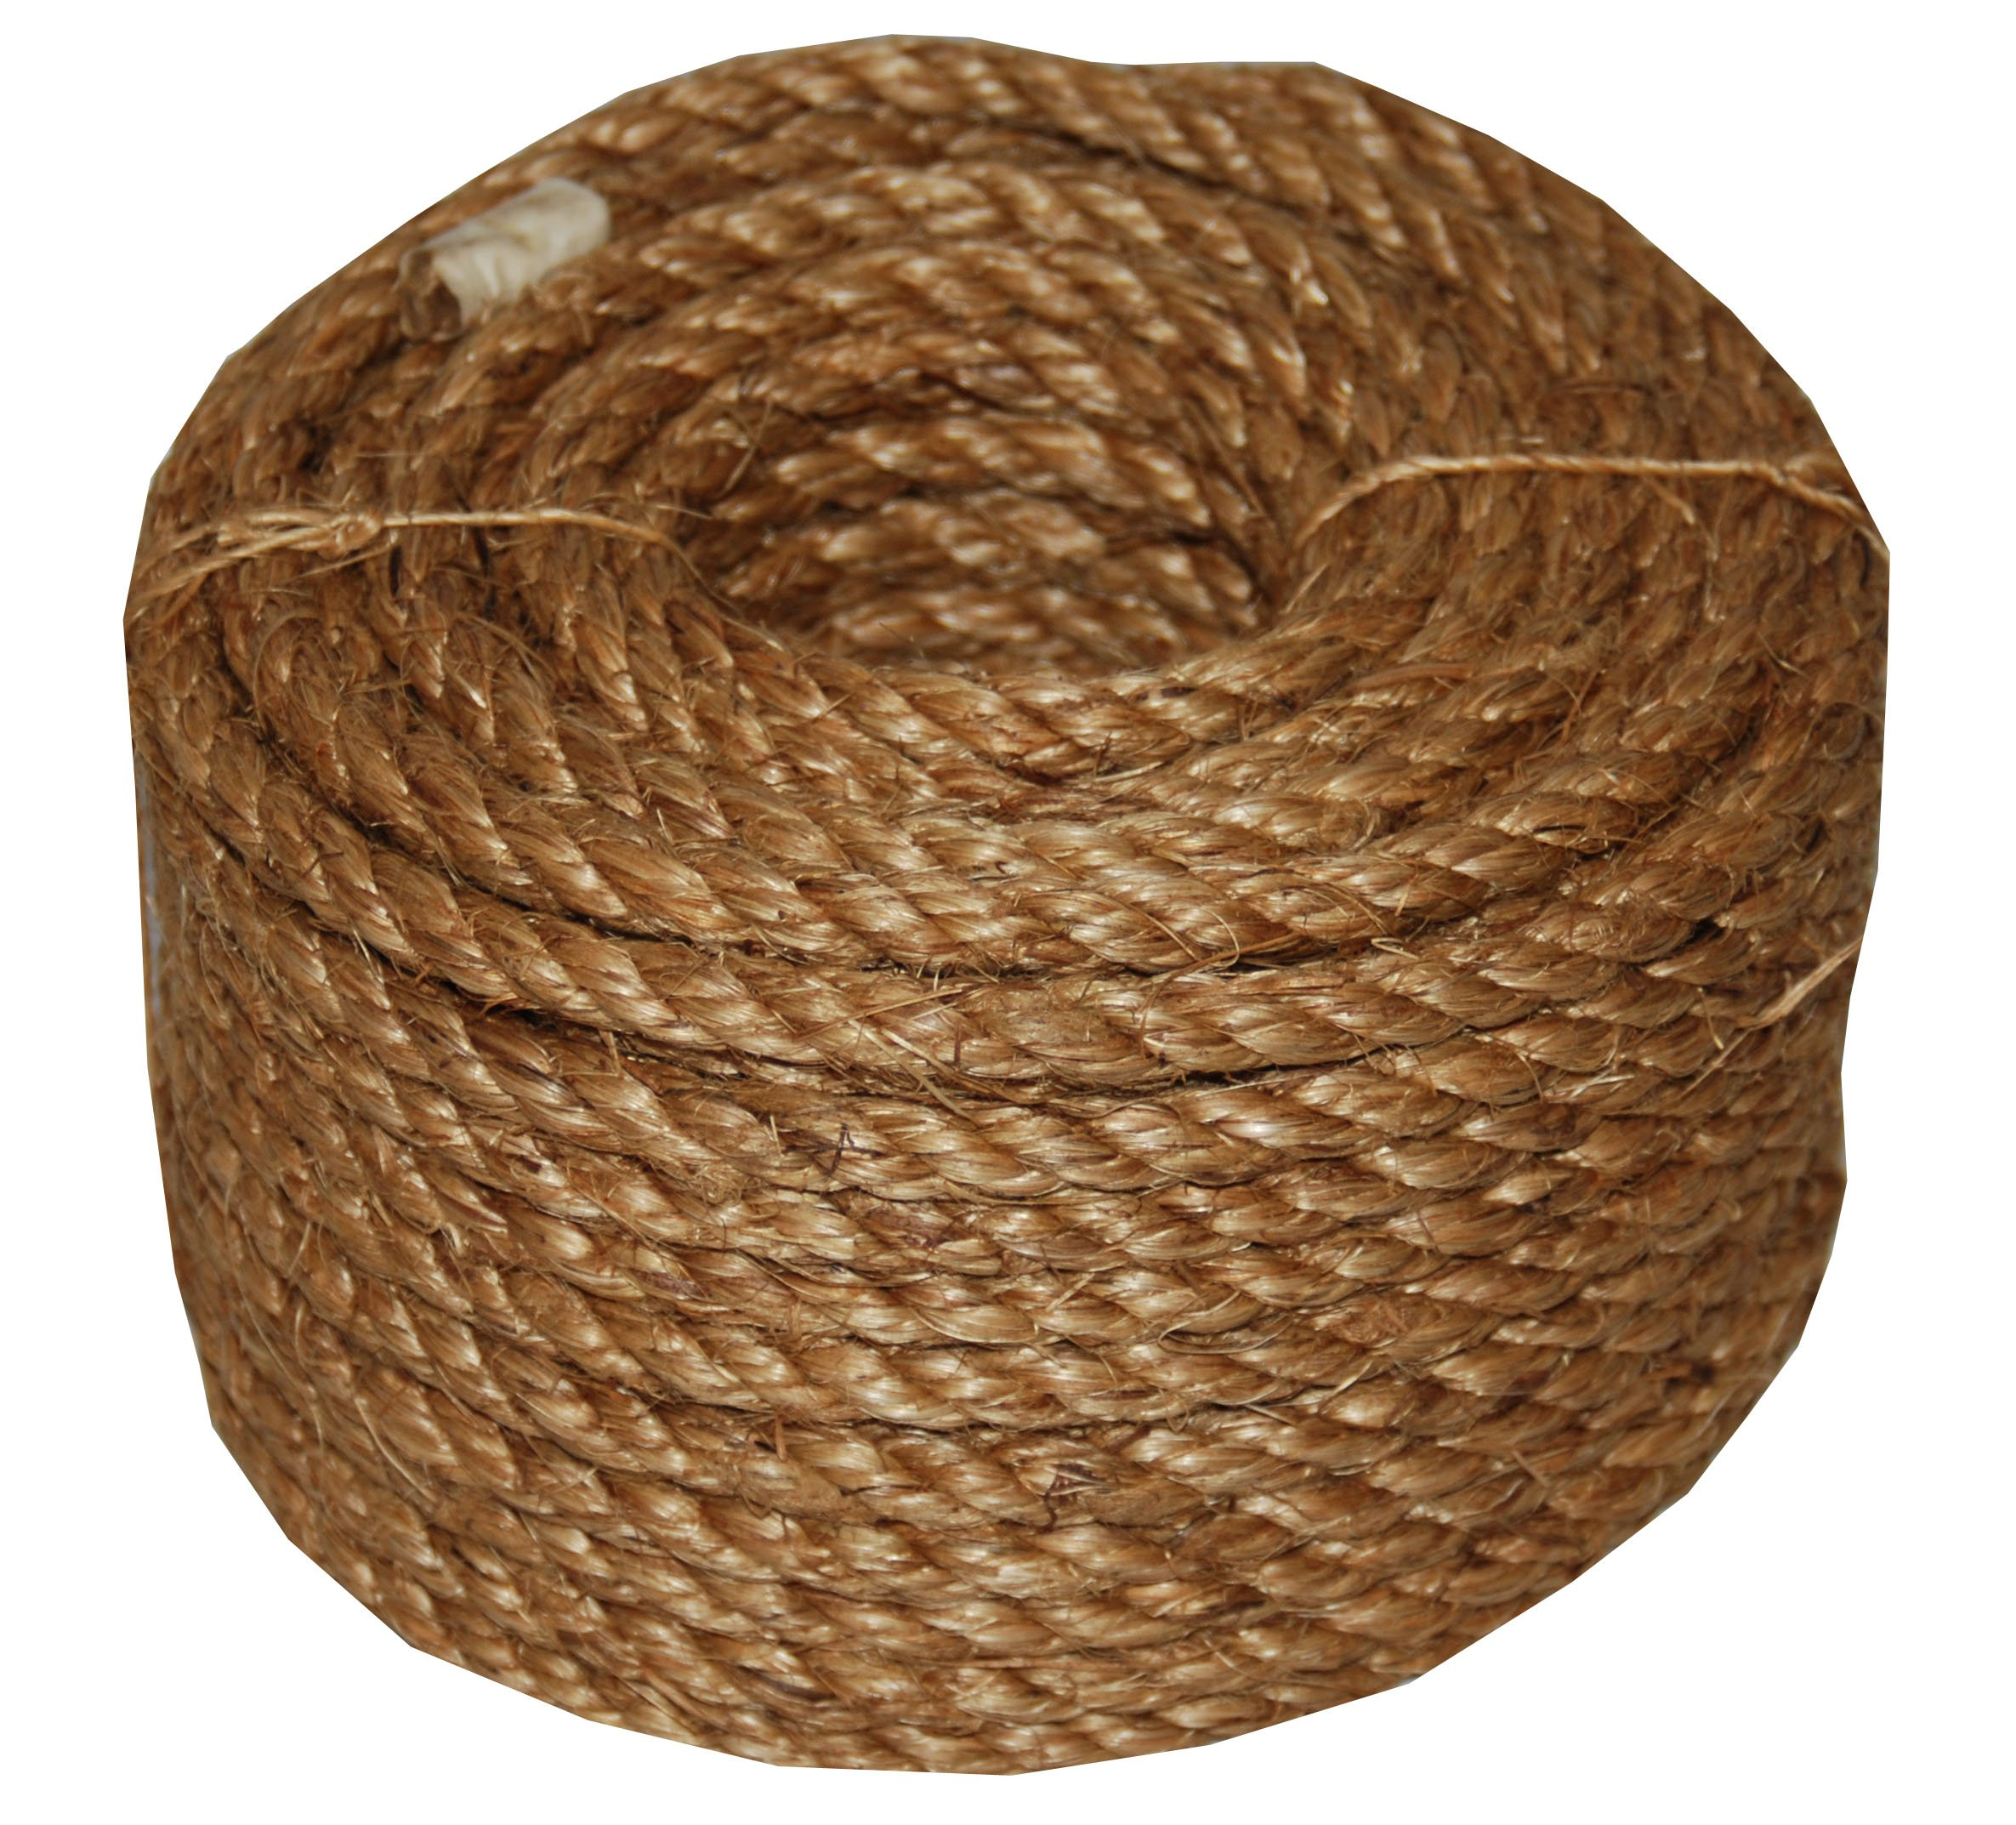 T.W Evans Cordage 26-011 1/4-Inch by 100-Feet 5 Star Manila Rope by T.W . Evans Cordage Co.